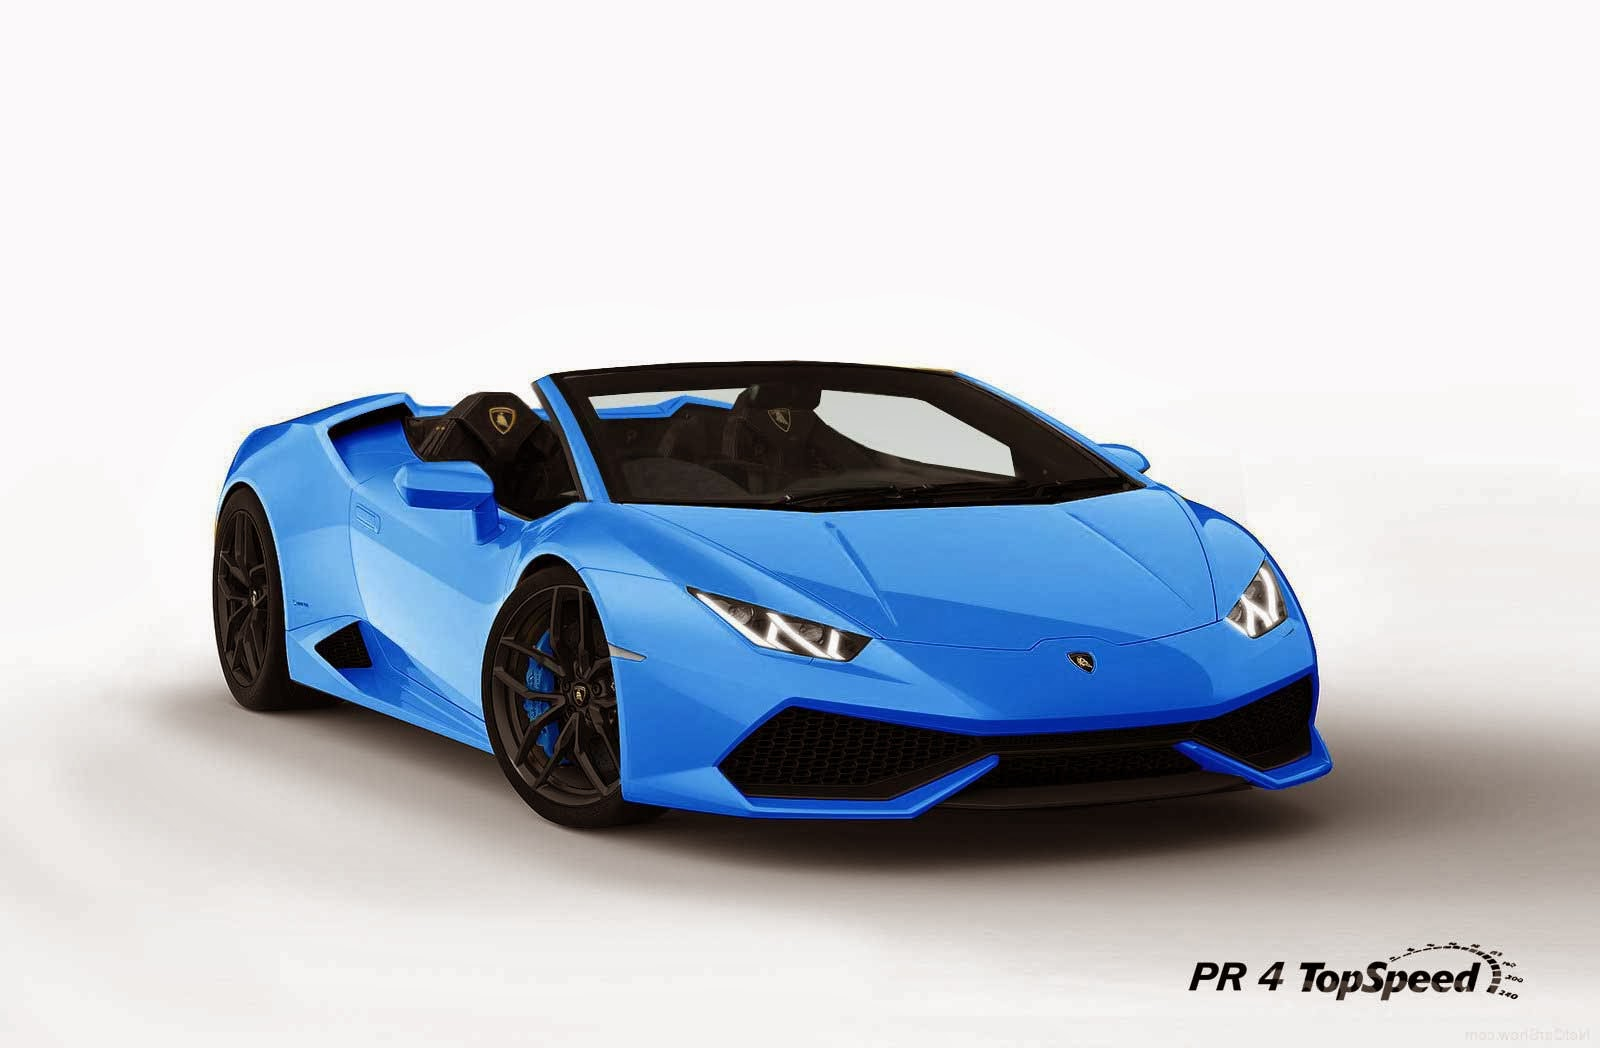 lamborghini huracan lp 610 4 roadster convertible sports car 2016 mycarzilla. Black Bedroom Furniture Sets. Home Design Ideas